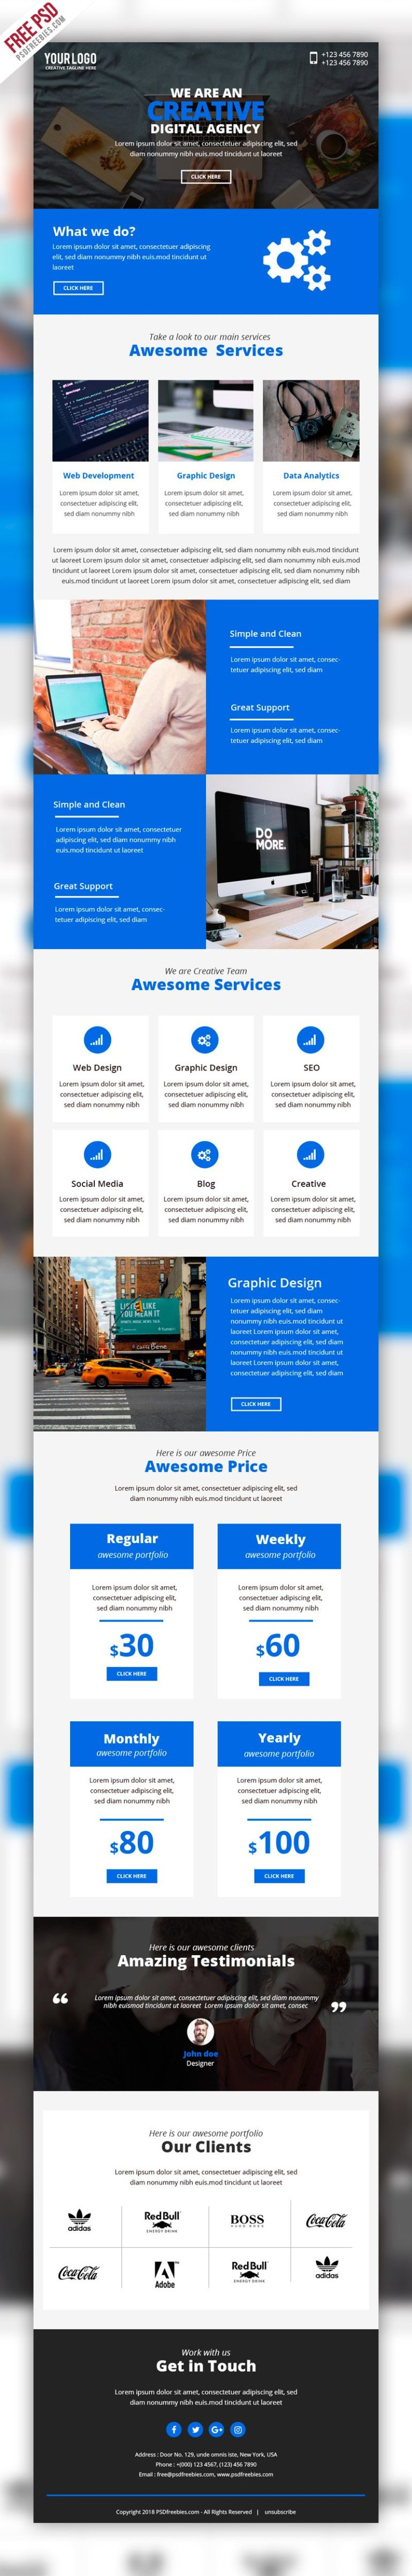 Business Marketing Emailer Template PSD